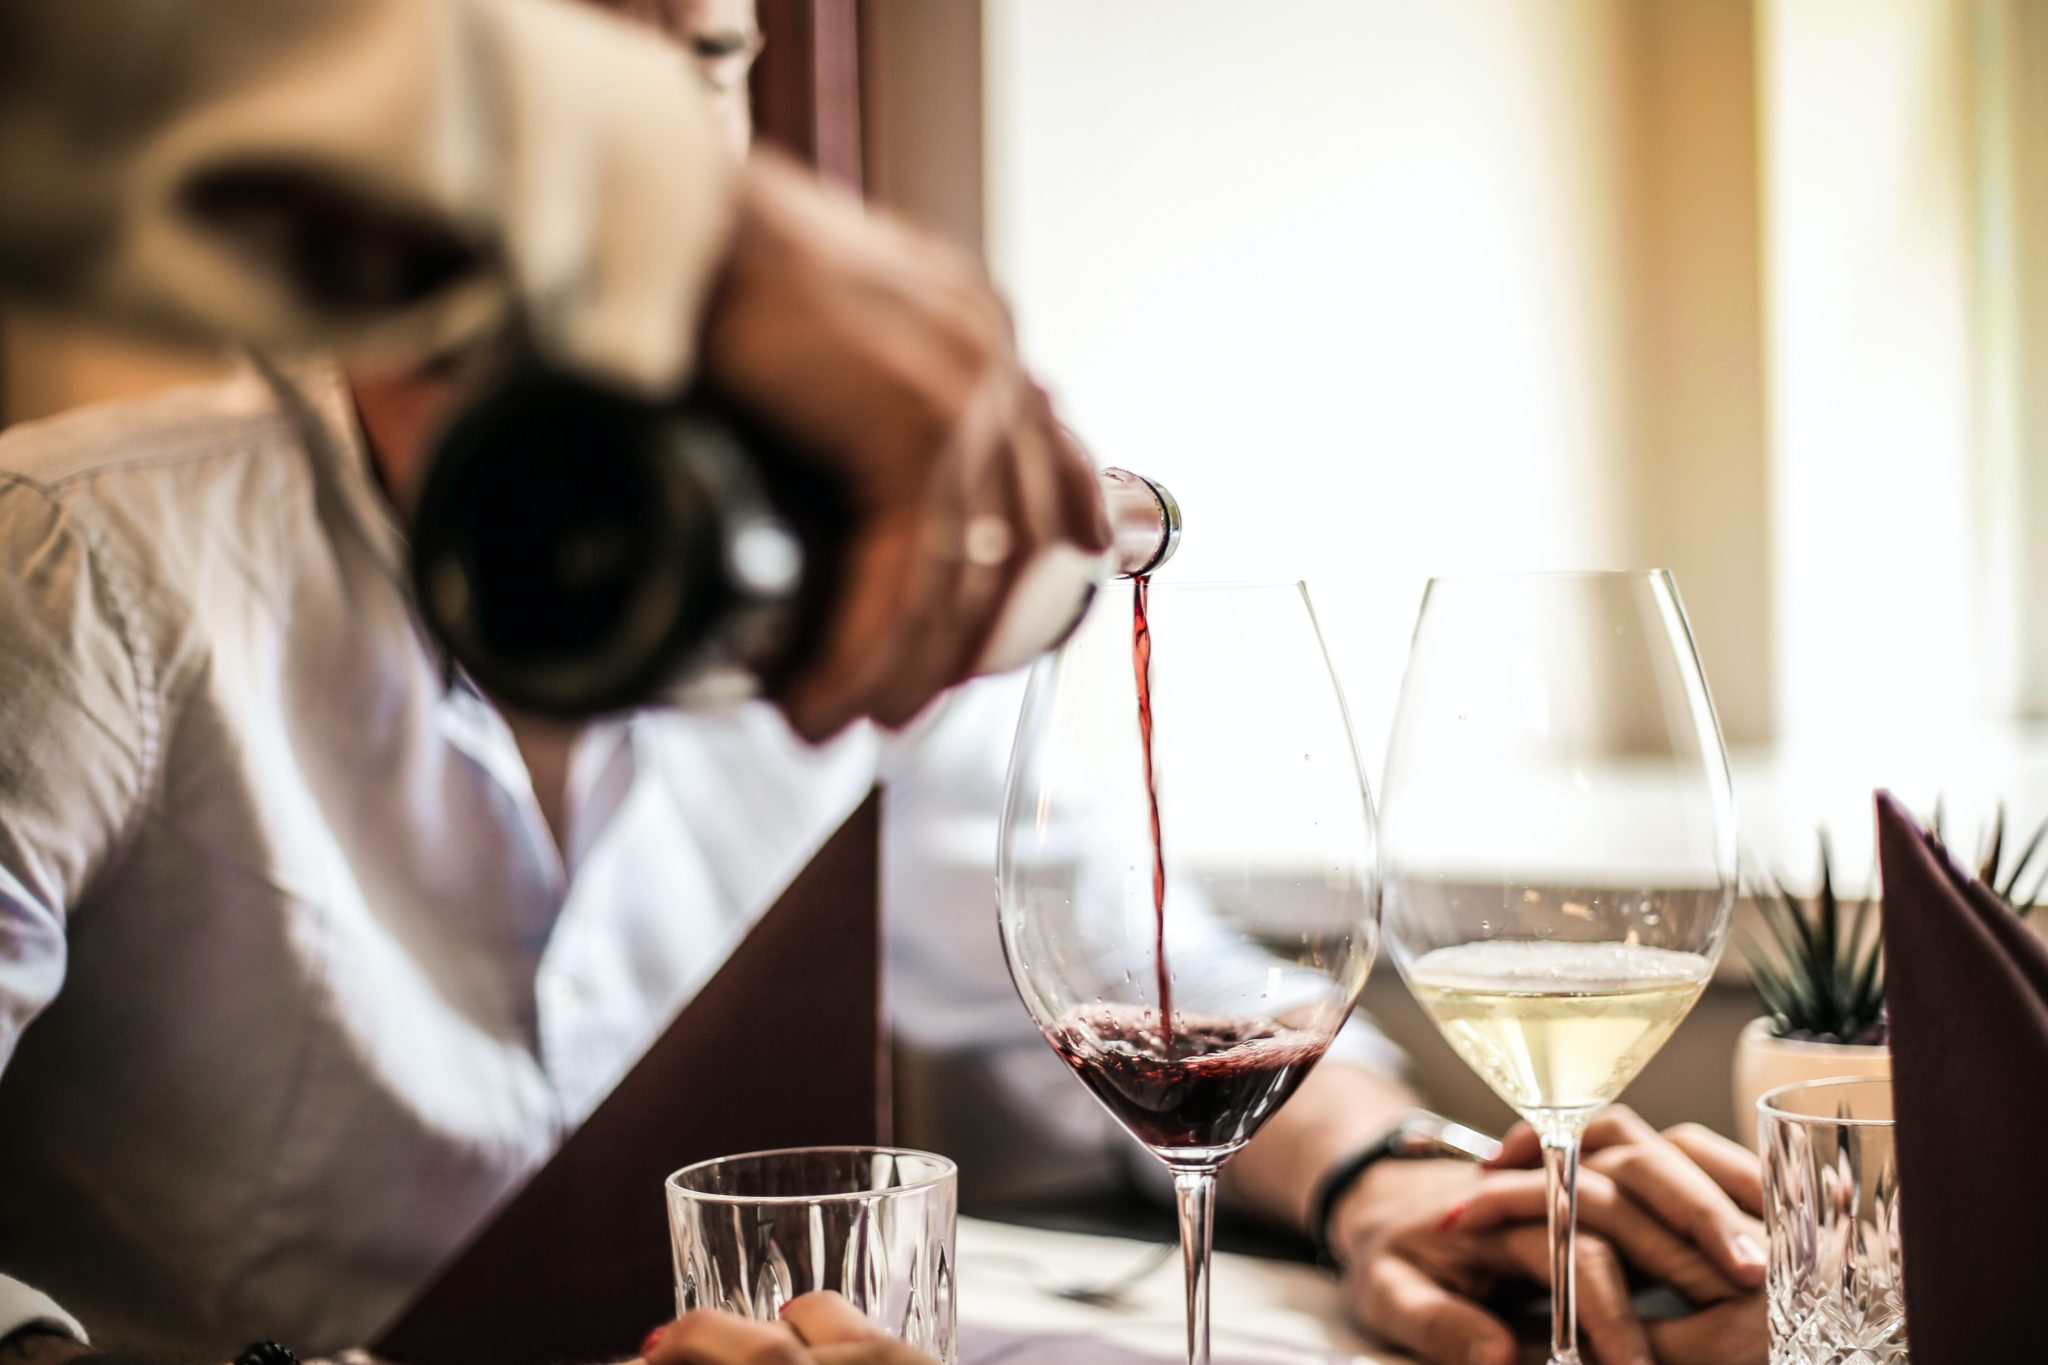 crop-man-pouring-red-wine-in-glass-in-restaurant-3756623